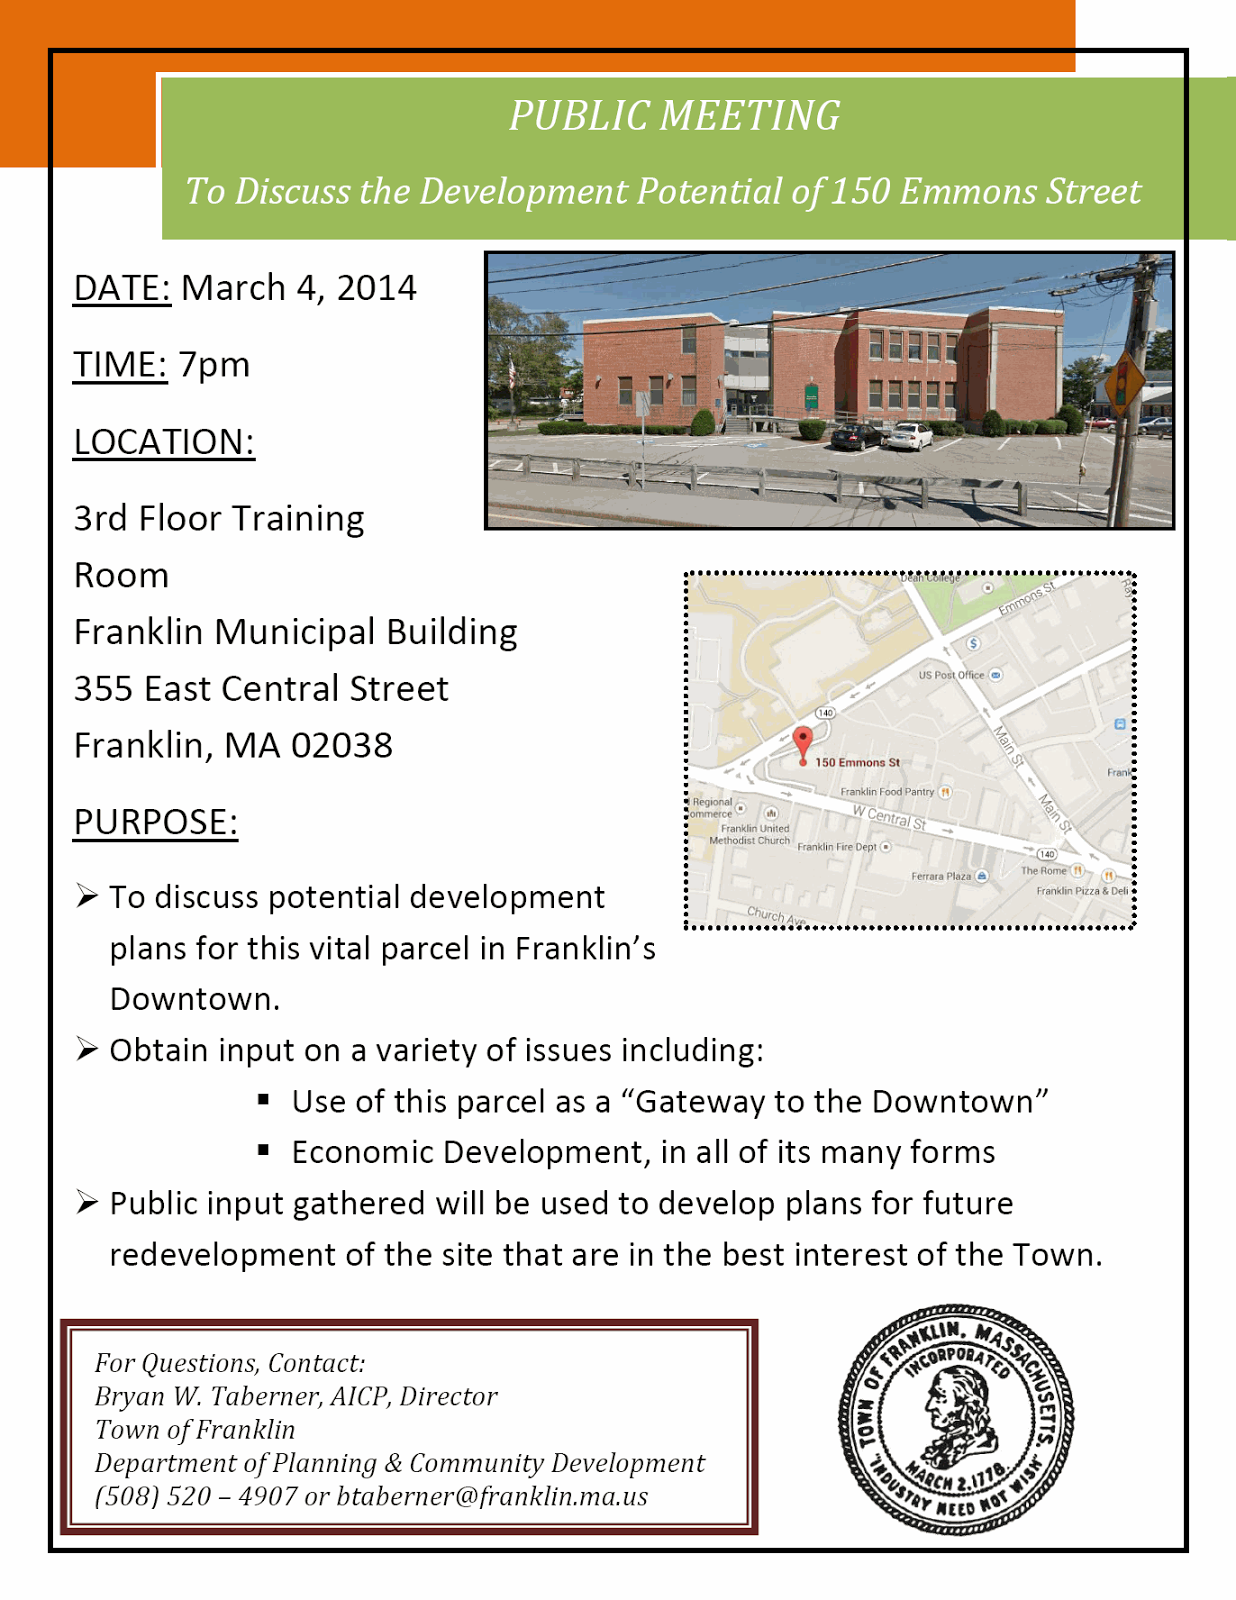 flyer for public meeting on future of Emmons St building